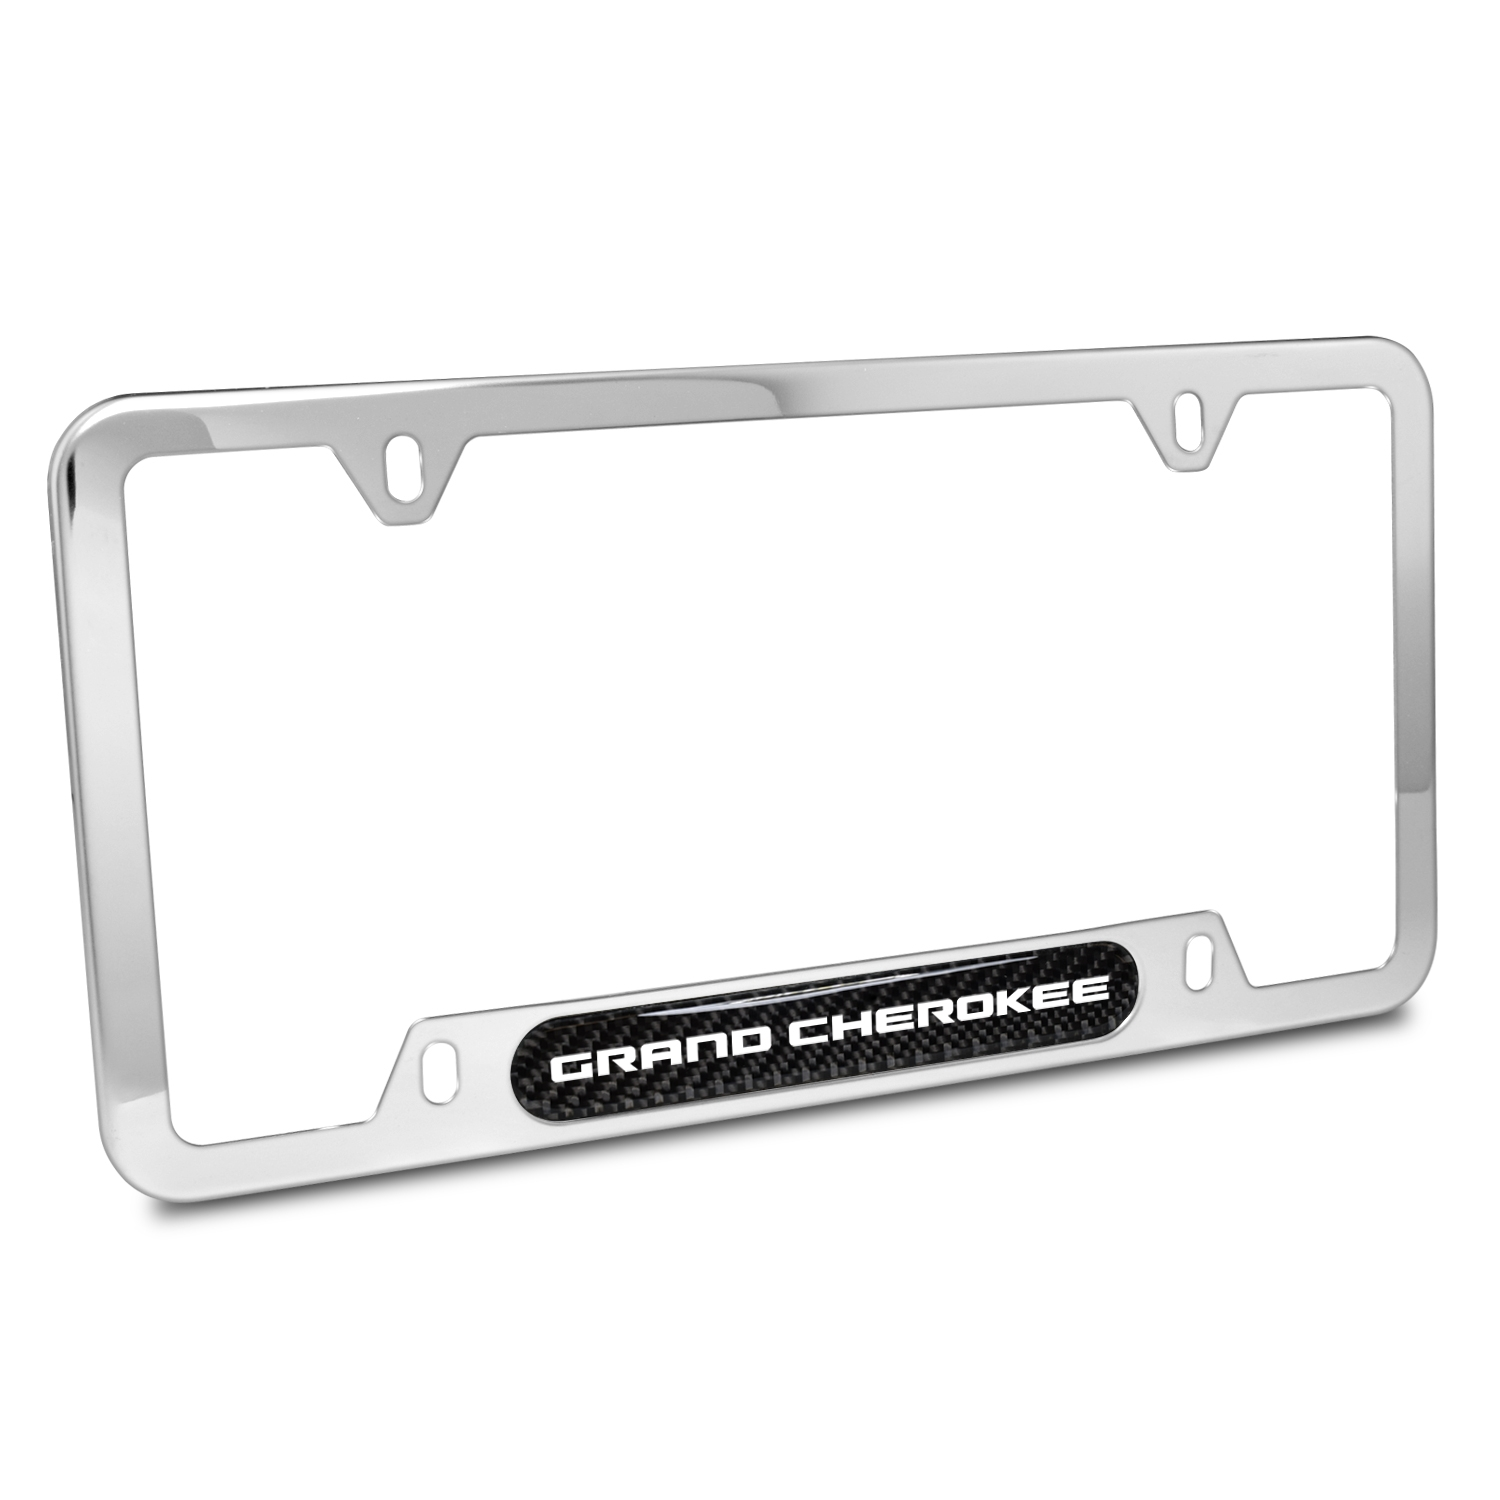 Jeep Grand Cherokee Real Carbon Fiber Nameplate Chrome Stainless Steel License Plate Frame